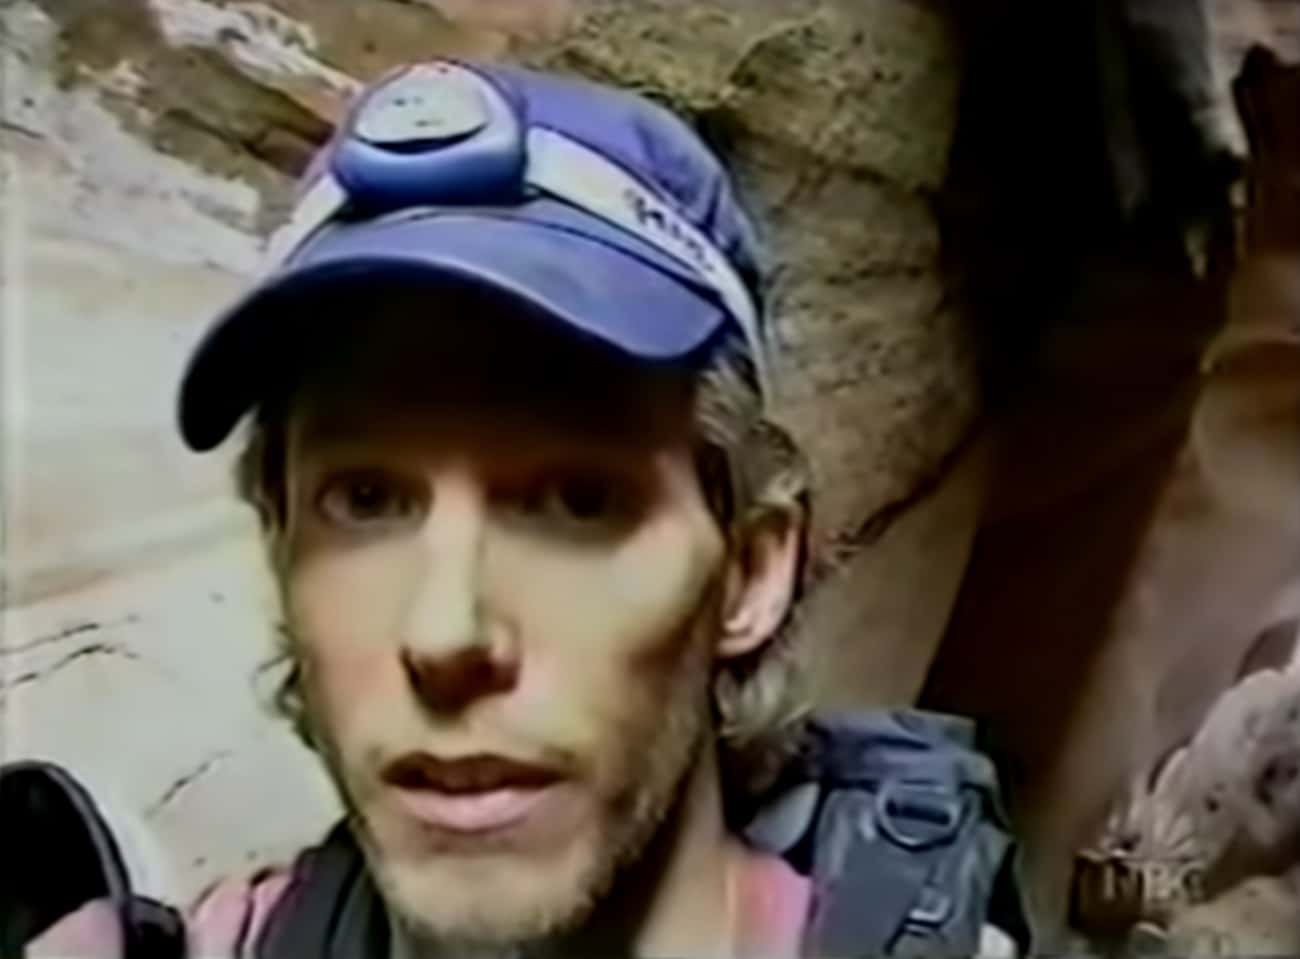 Aron Ralston Cut Off His Own Arm To Save His Life